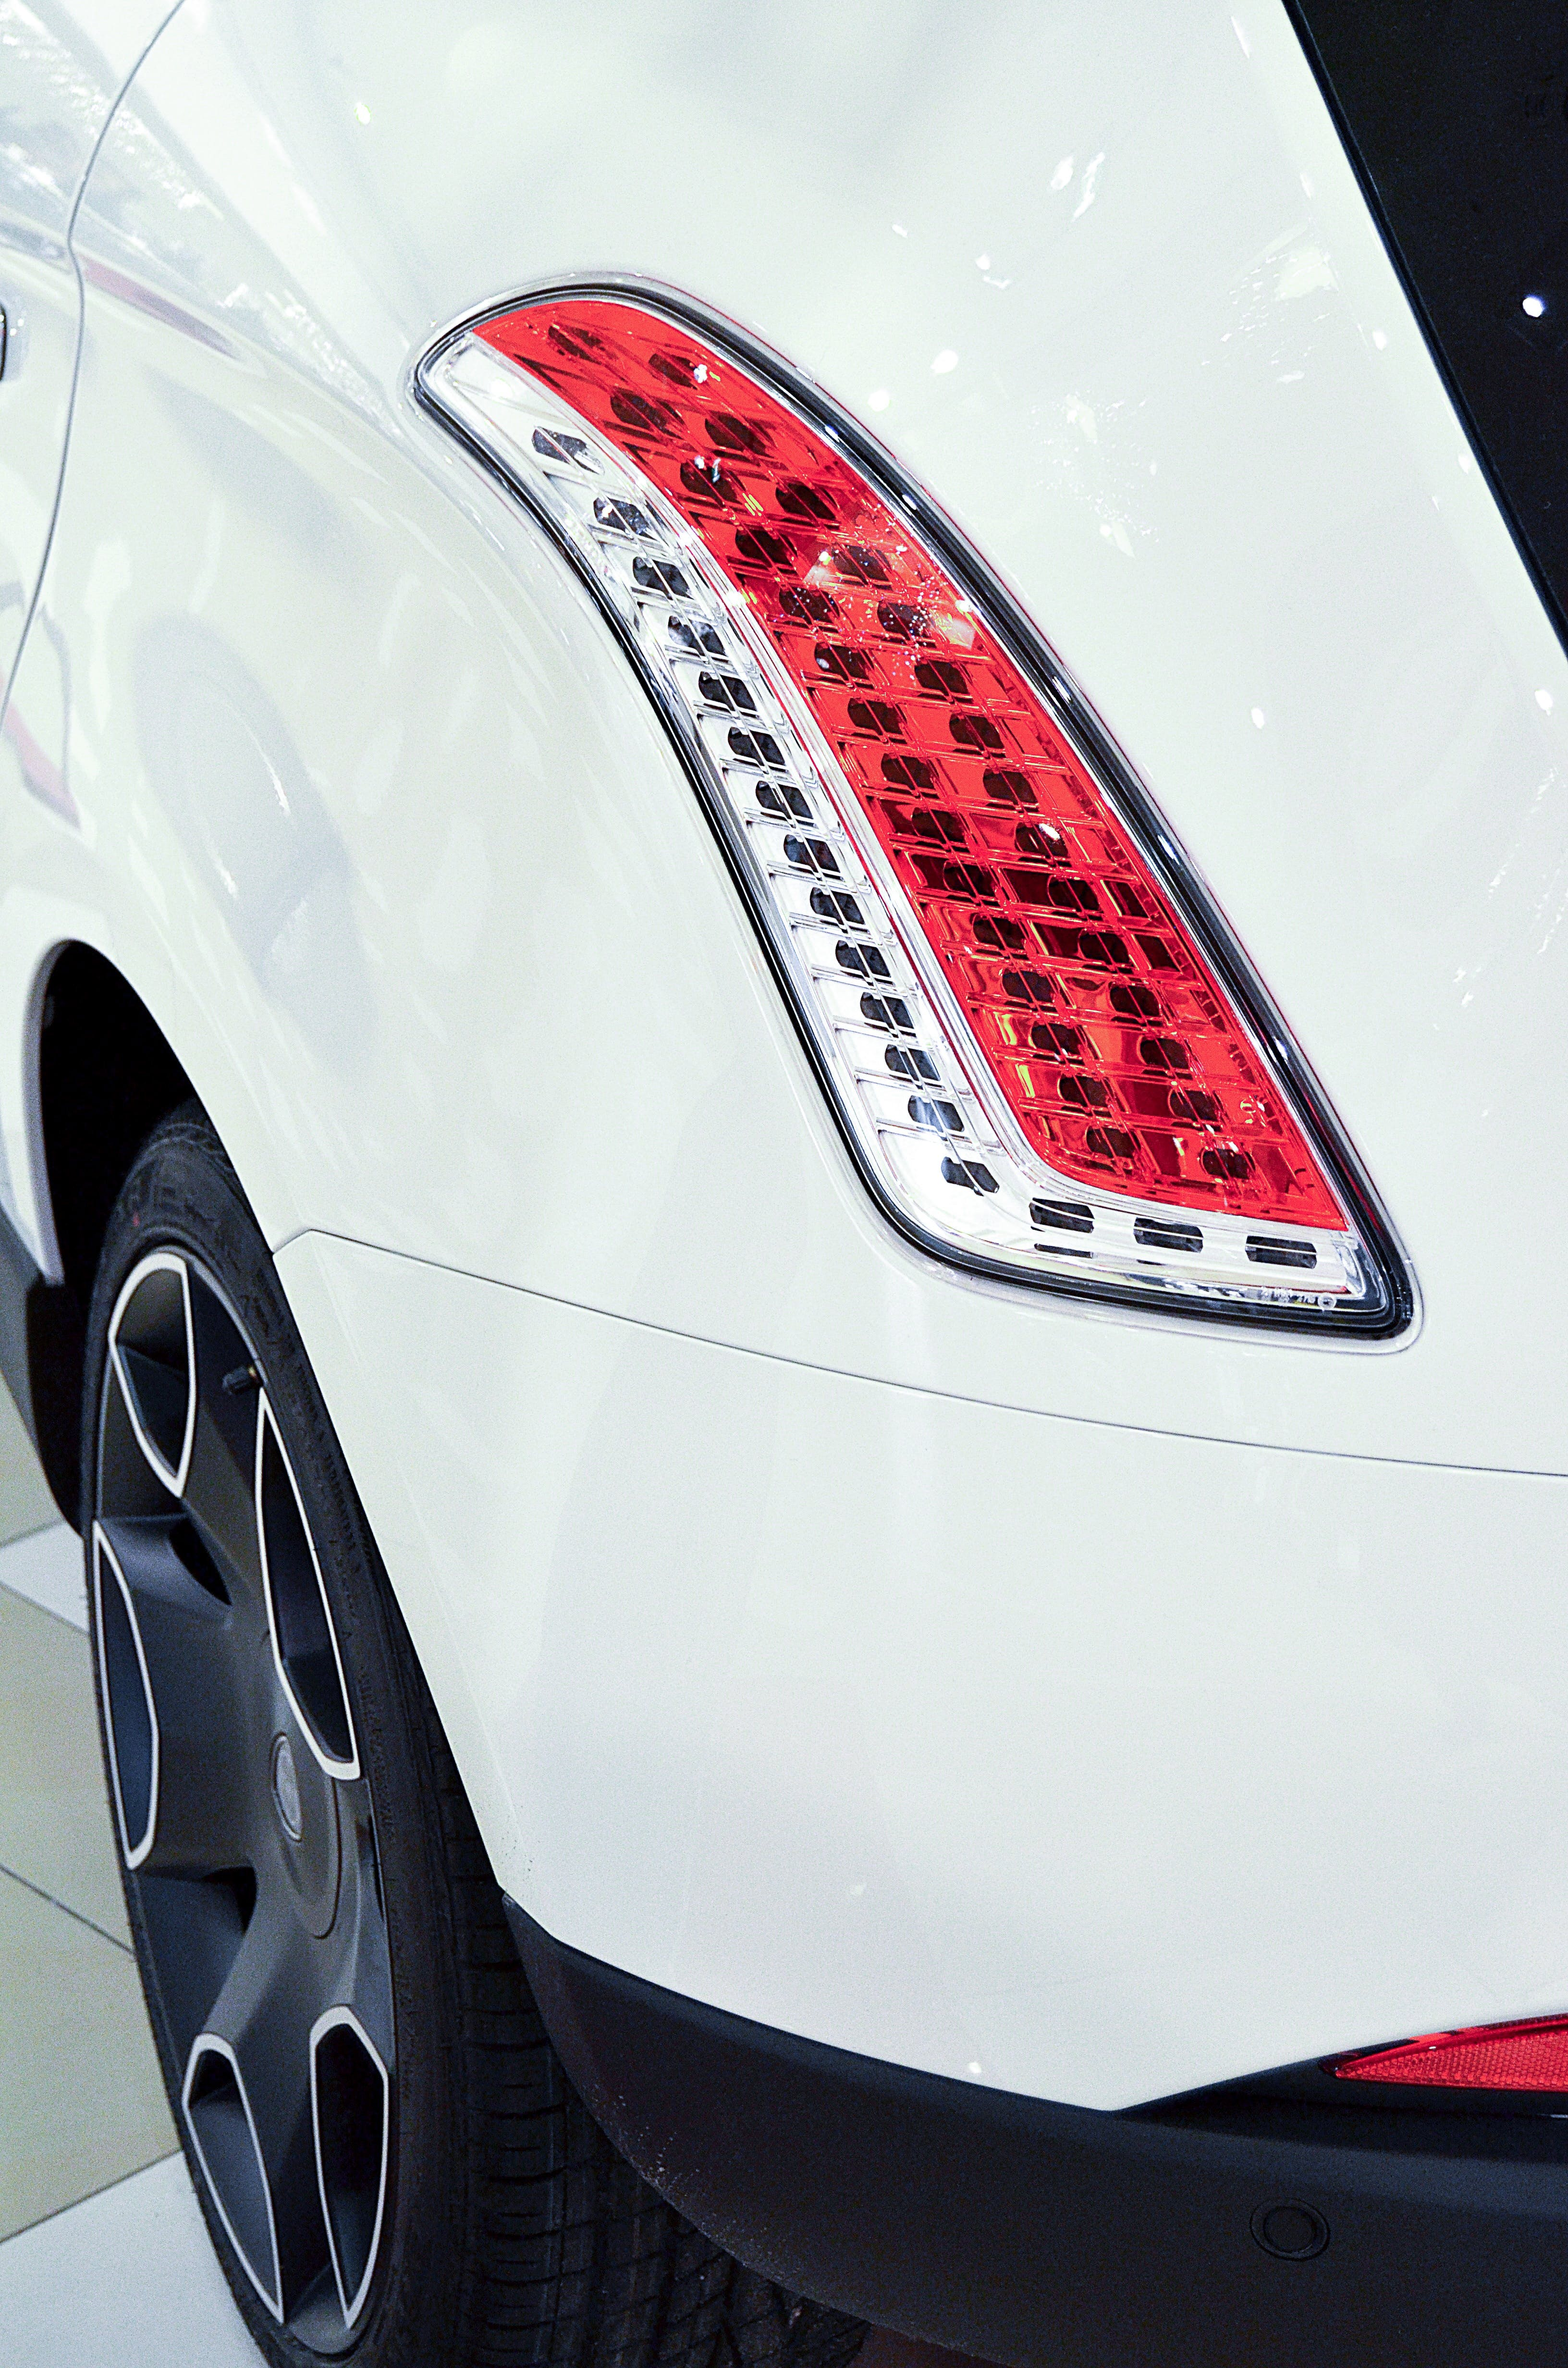 Red and White Car Tail Light